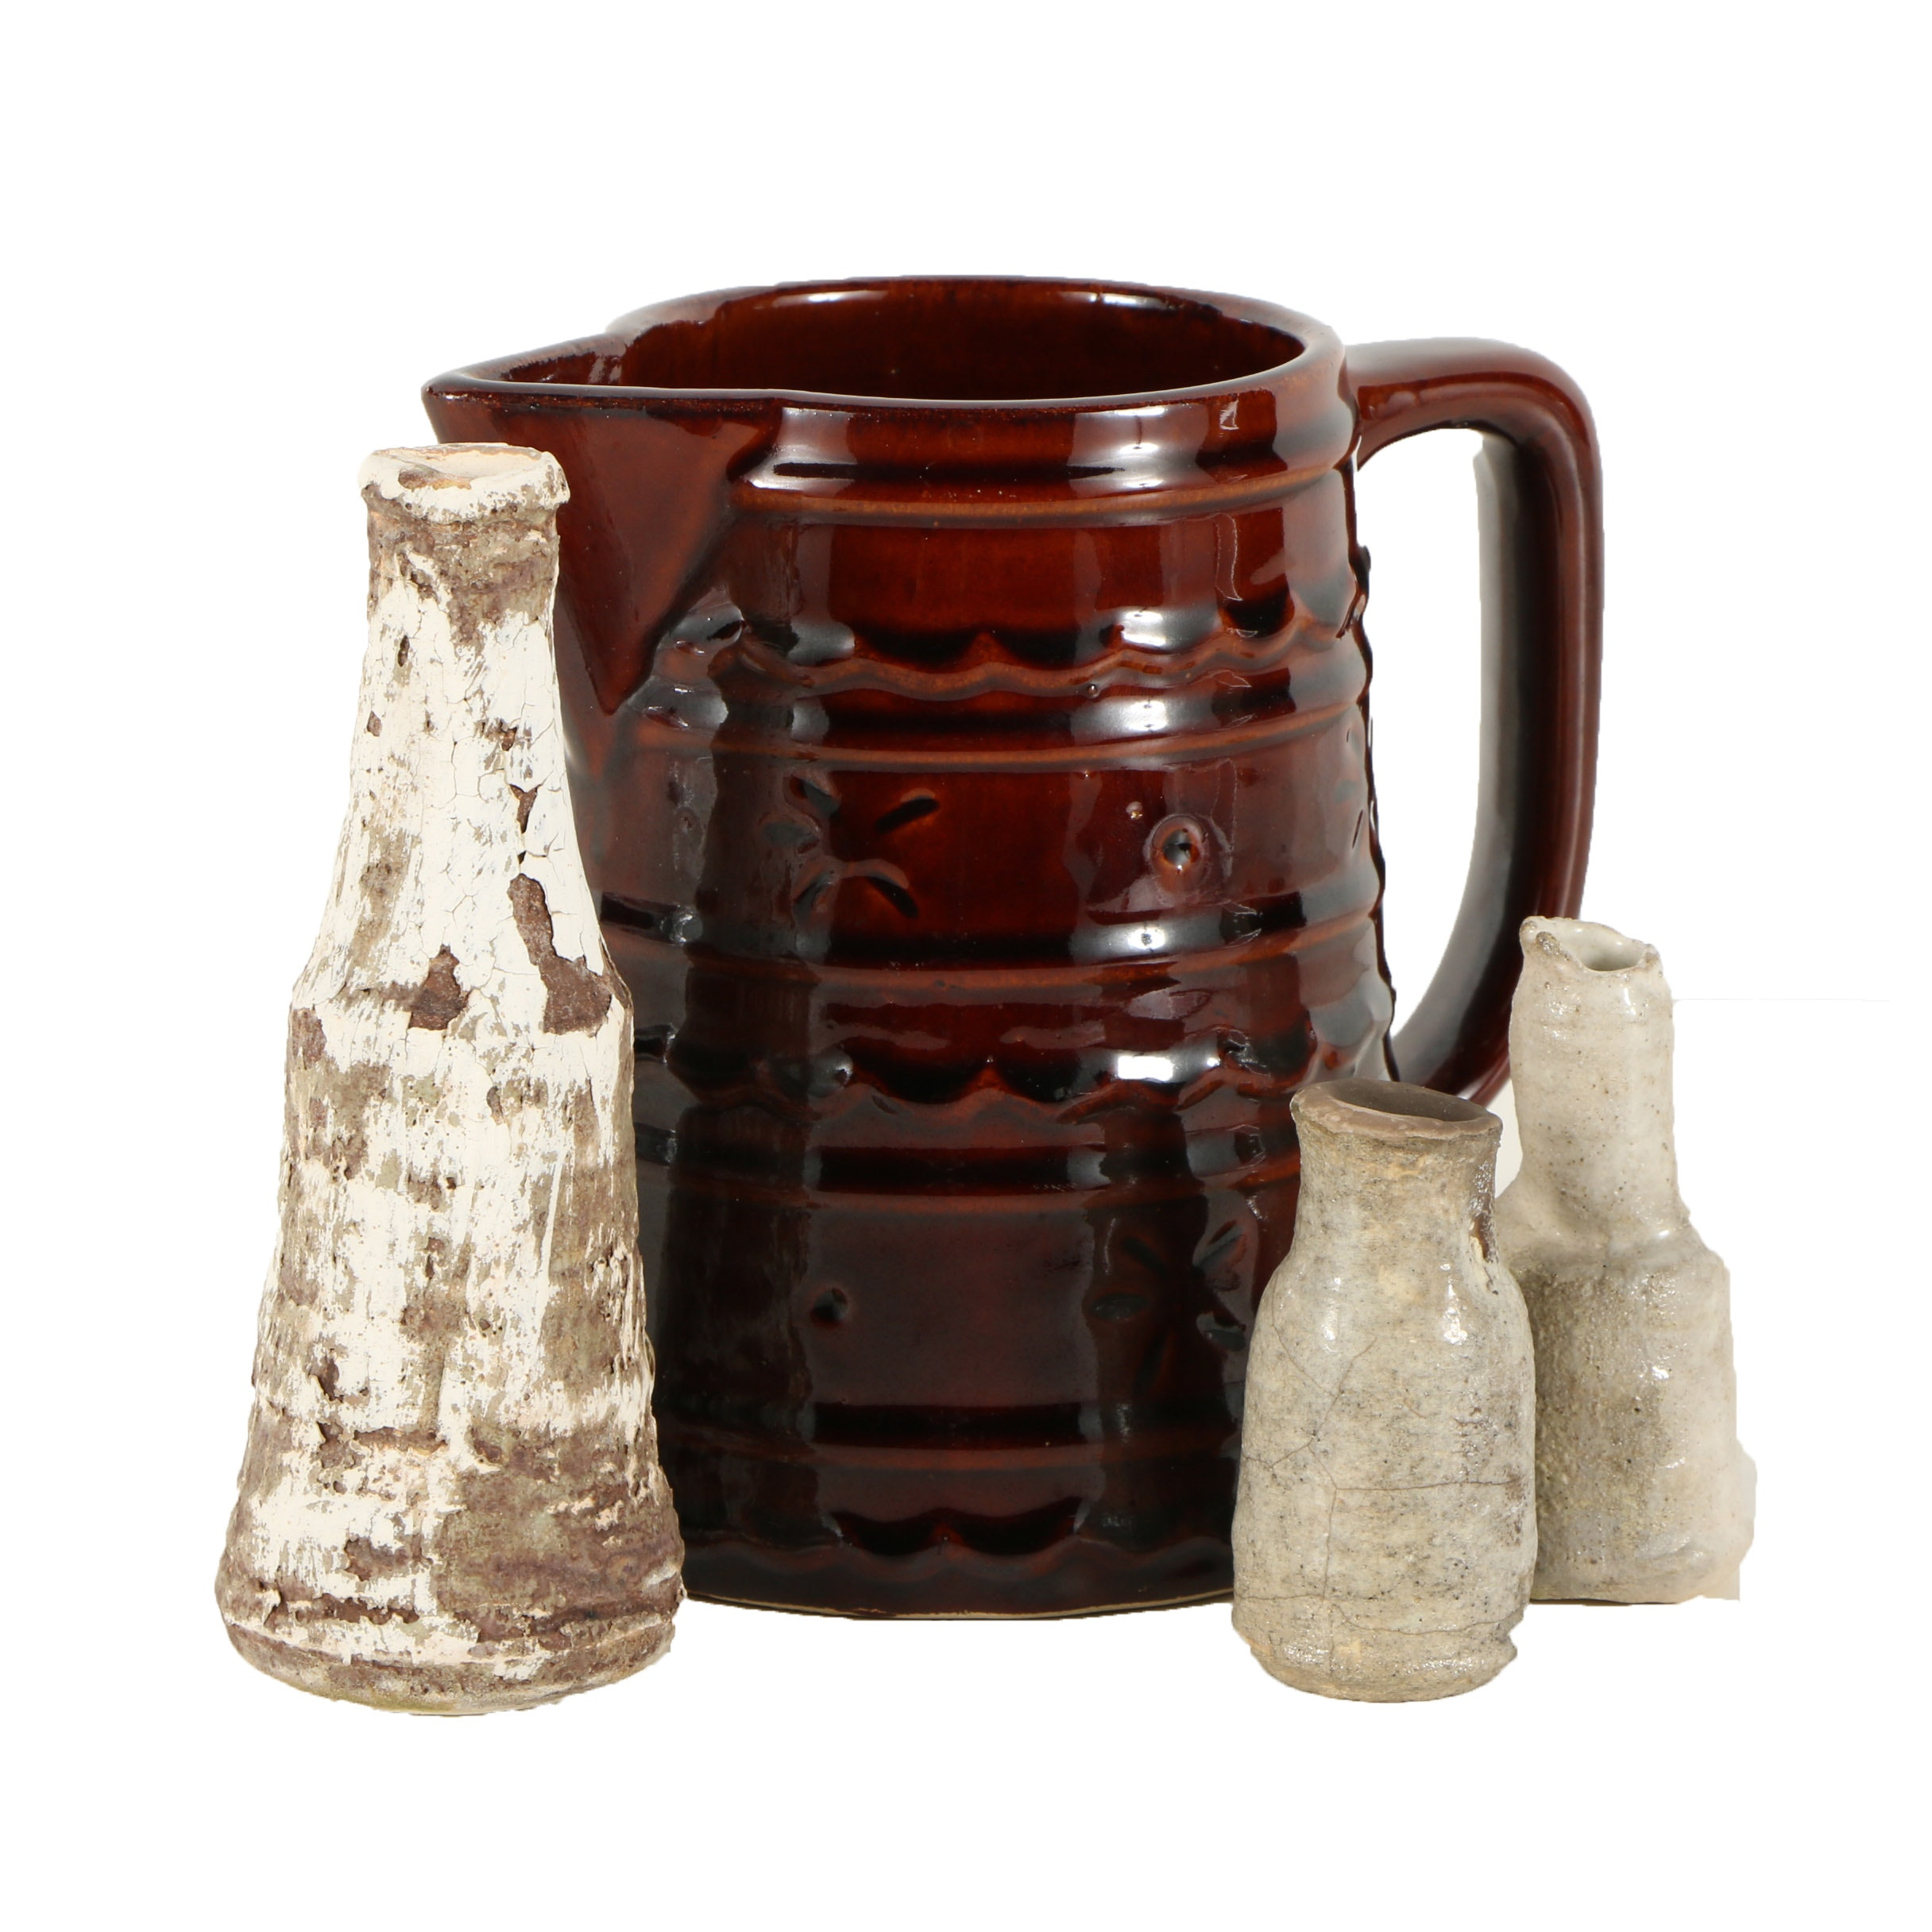 Kati Russell Bud Vessels and Marcrest Ceramic Pitcher